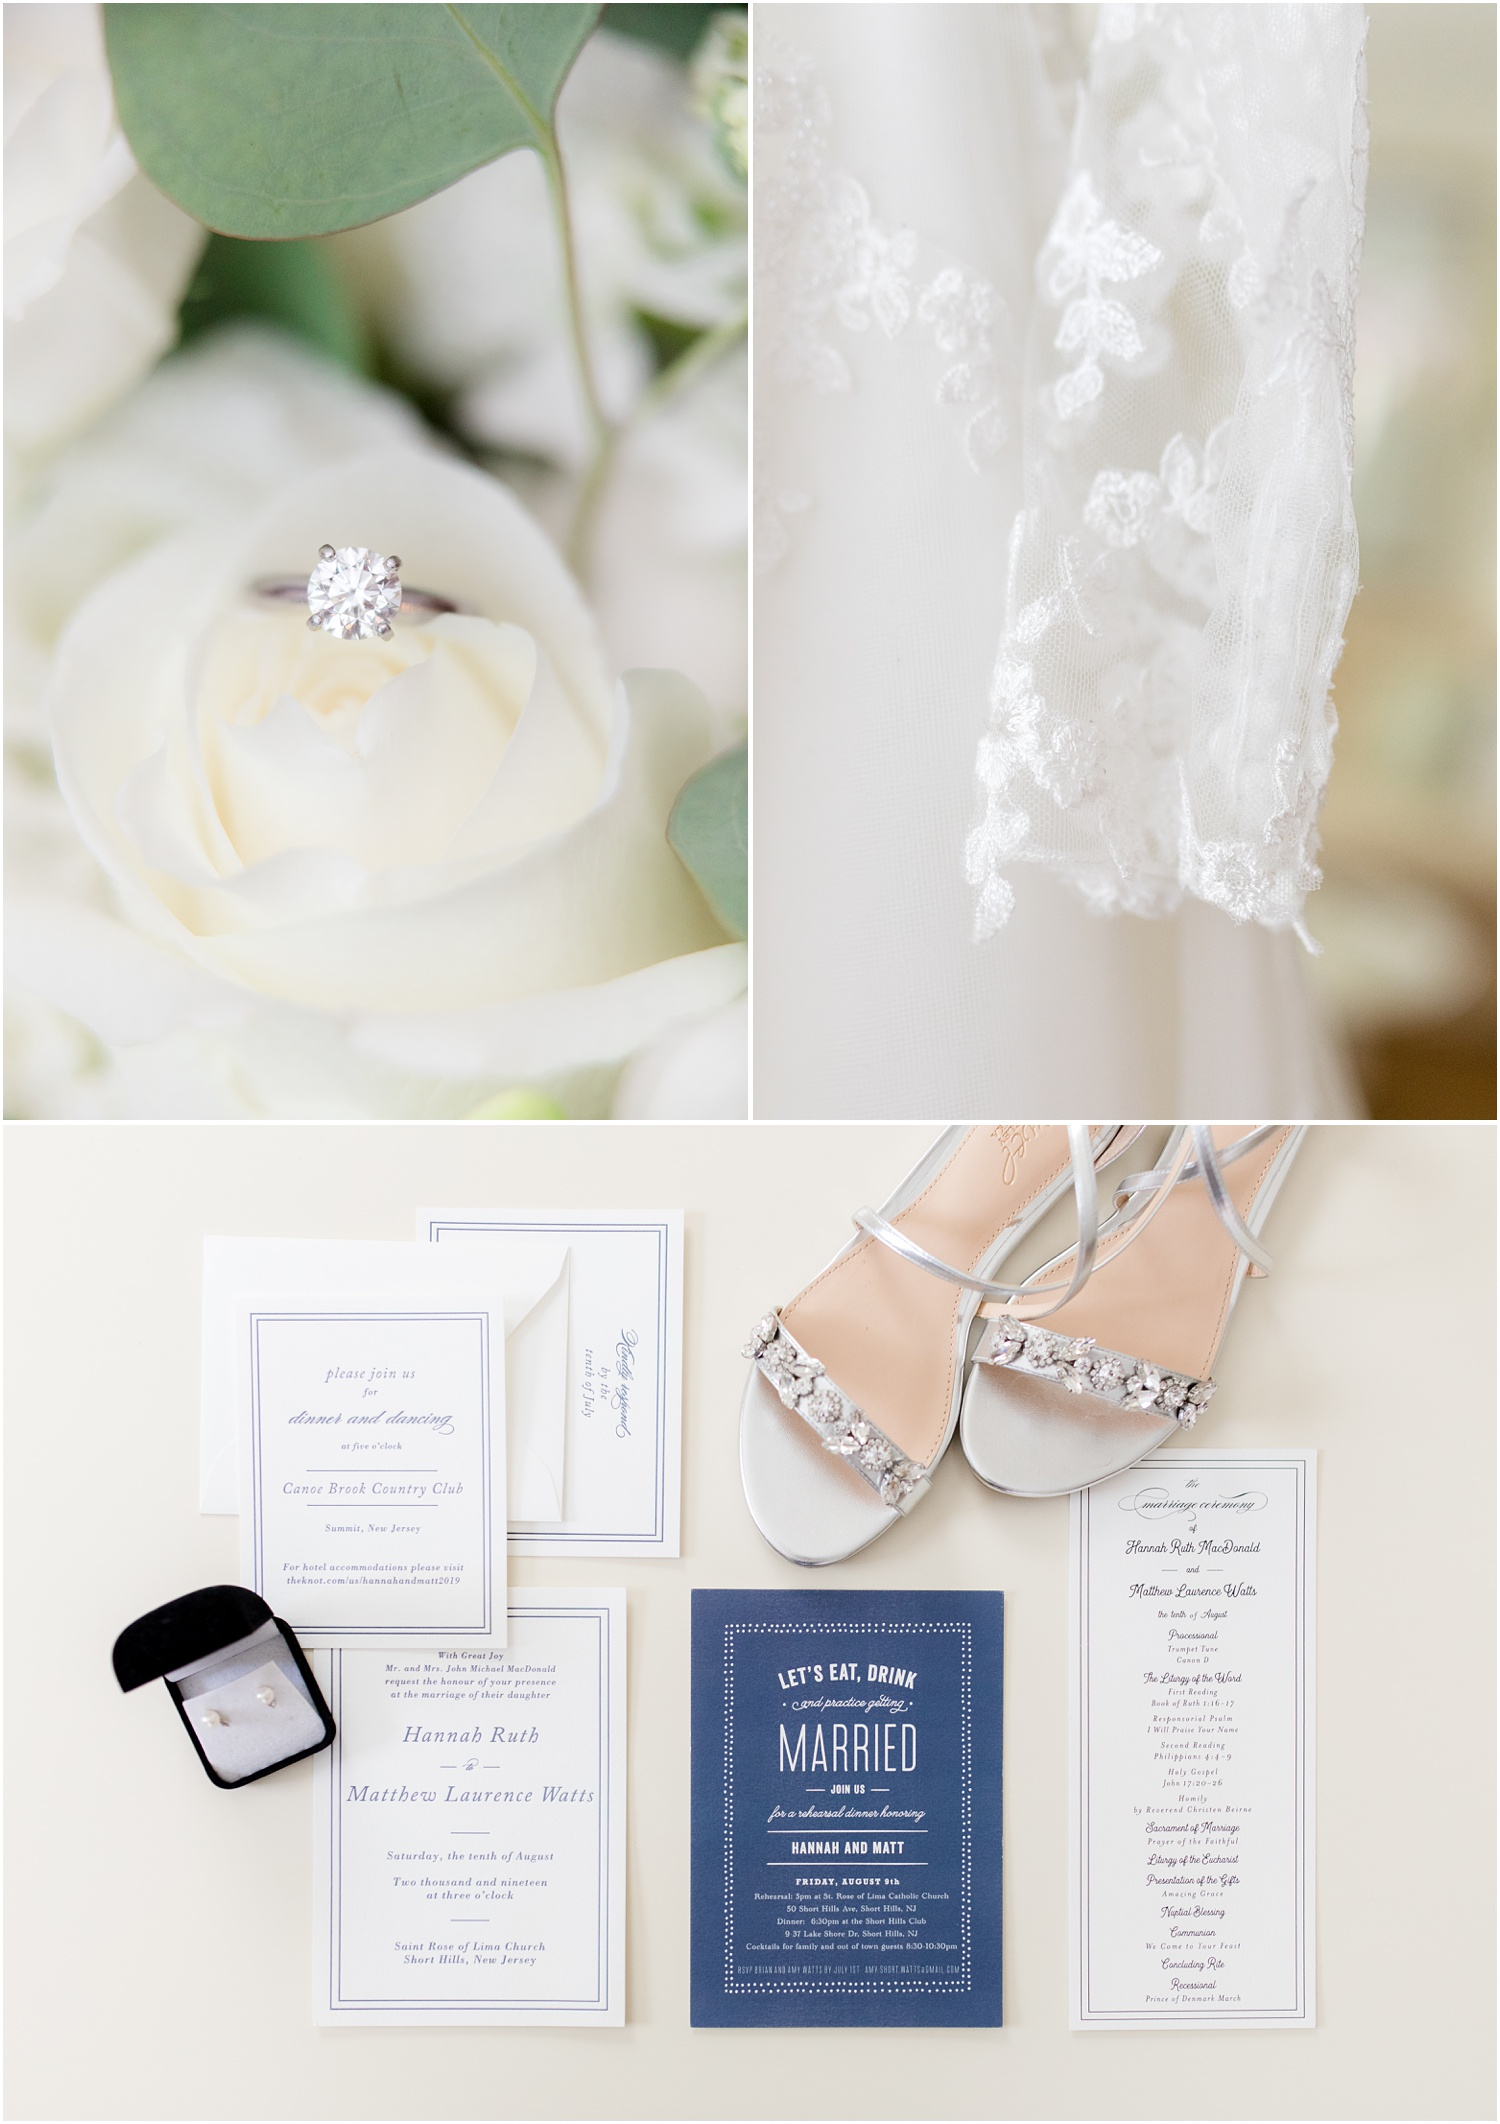 Copy of Wedding rings, wedding dress, and wedding invitations at bride's home in Short Hills, NJ.